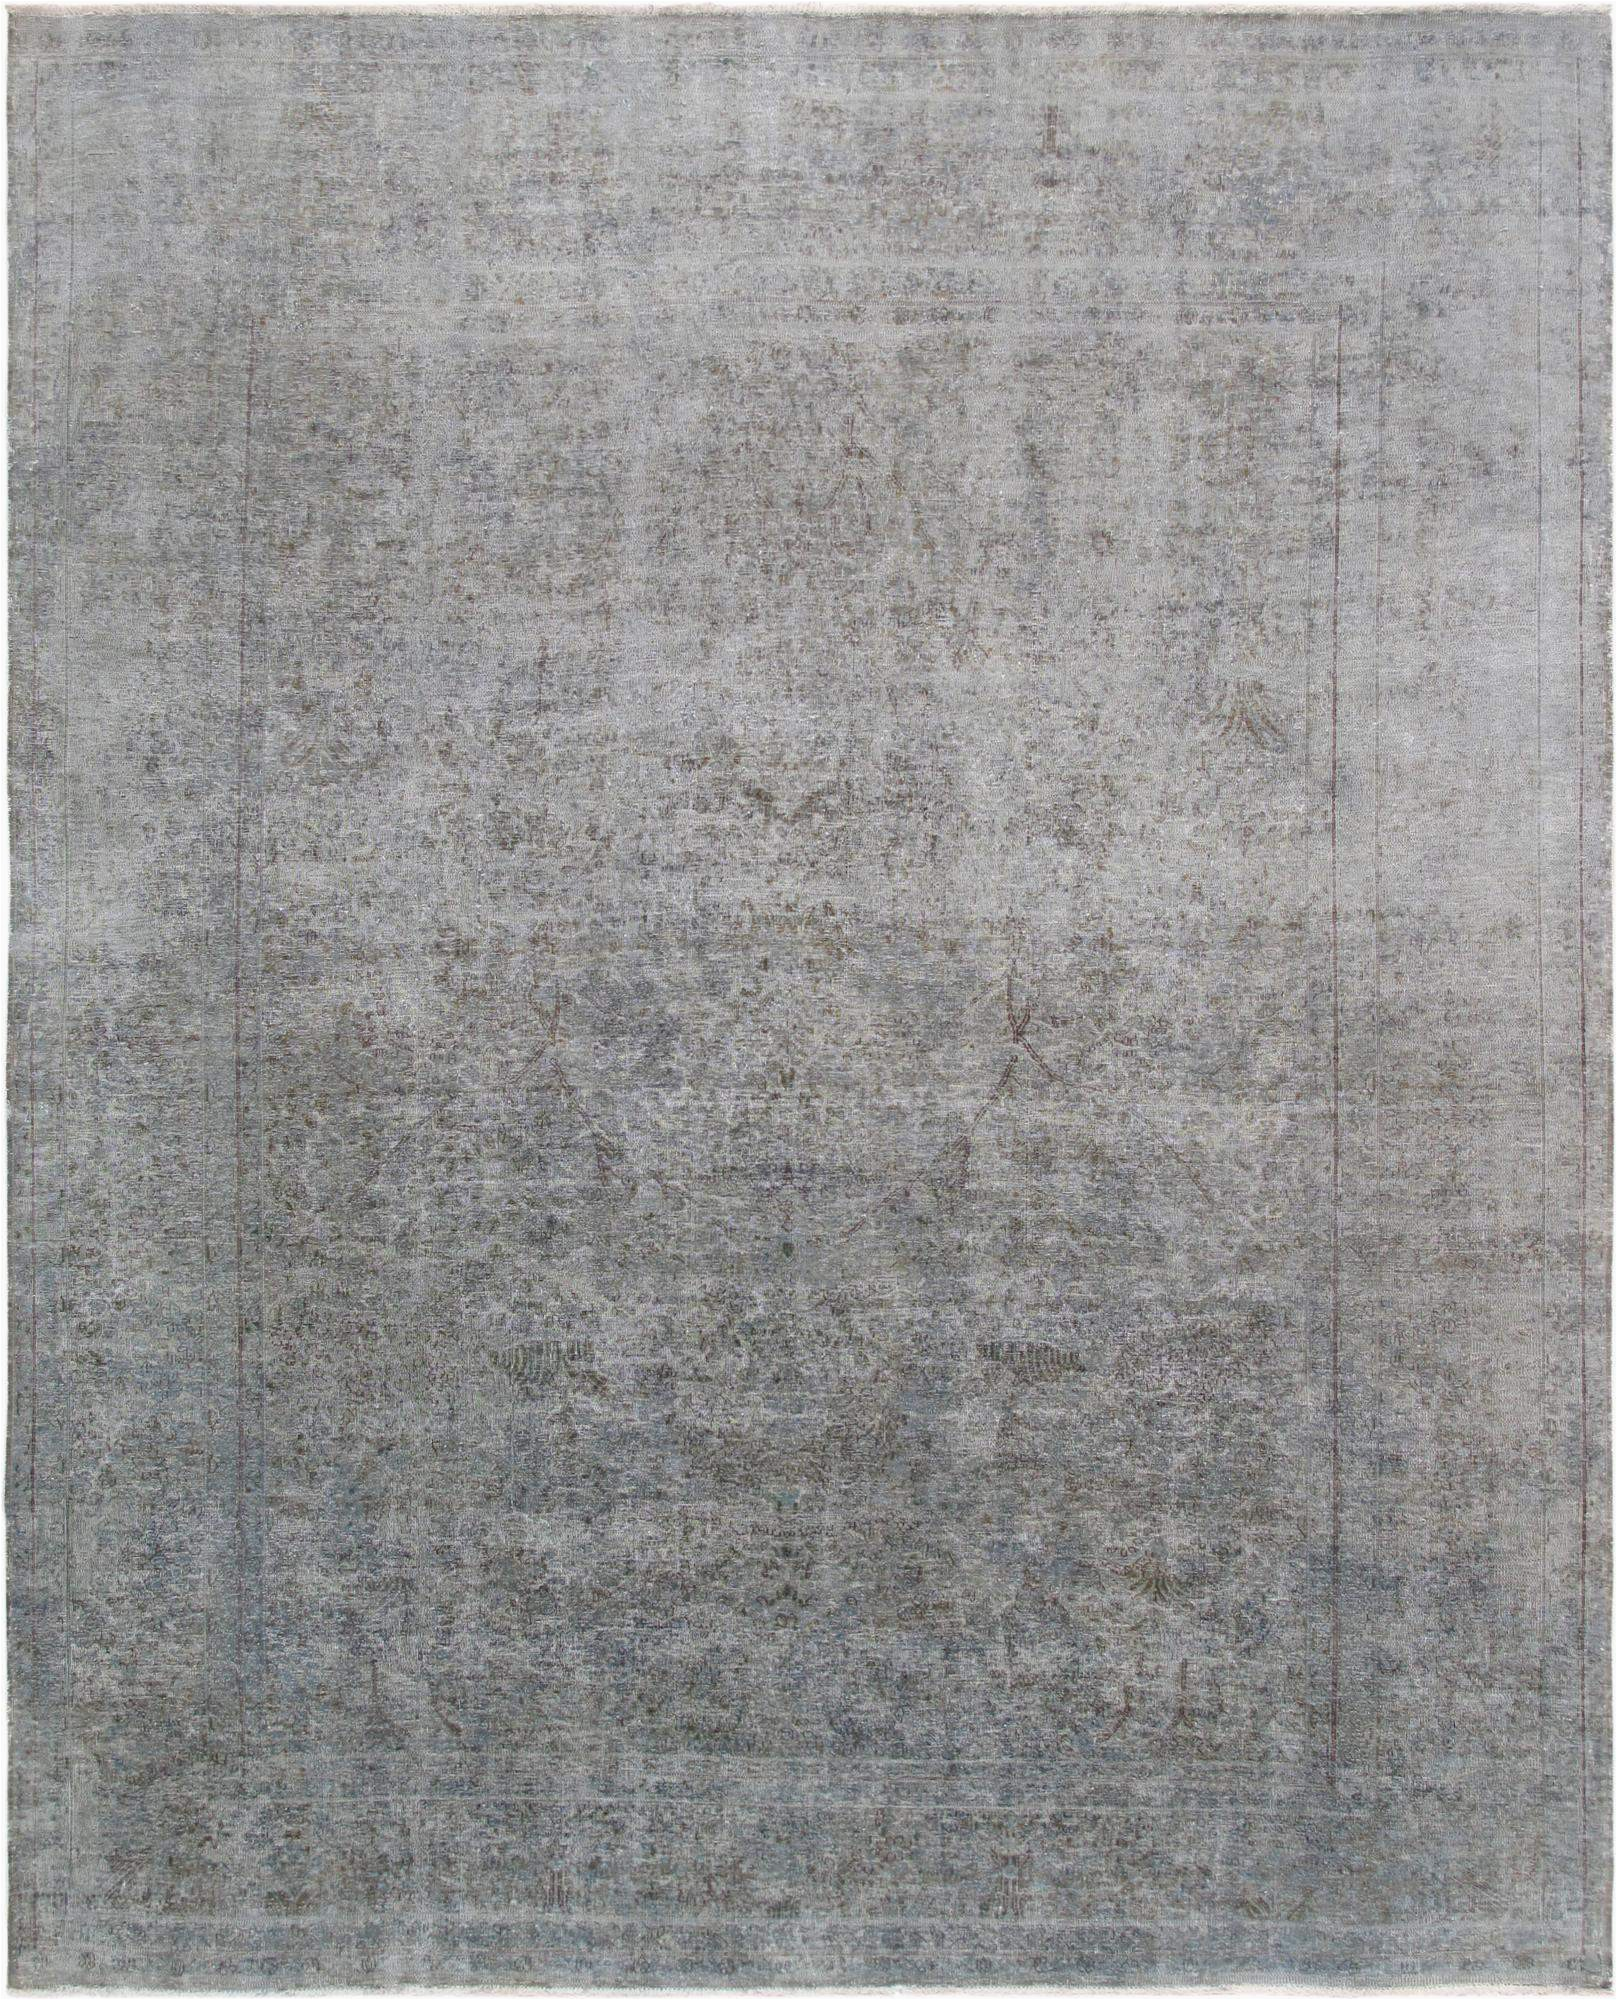 Grey and White area Rug 9×12 9 X 12 Overdyed Grey Wool area Rug